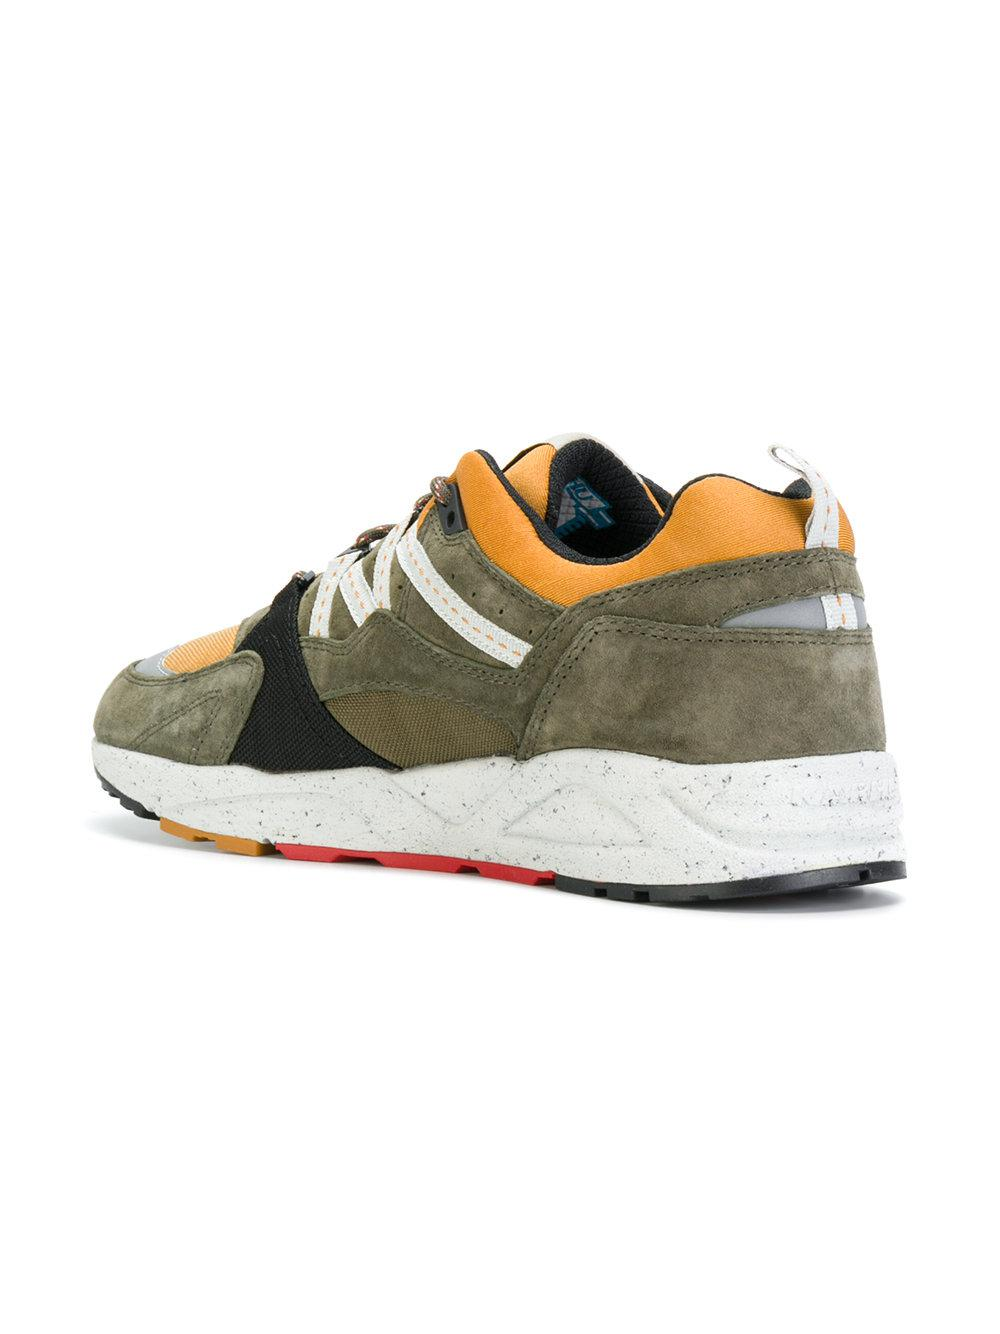 0f6b4a87626 Lyst - Karhu Fusion 2.0 Sneakers for Men